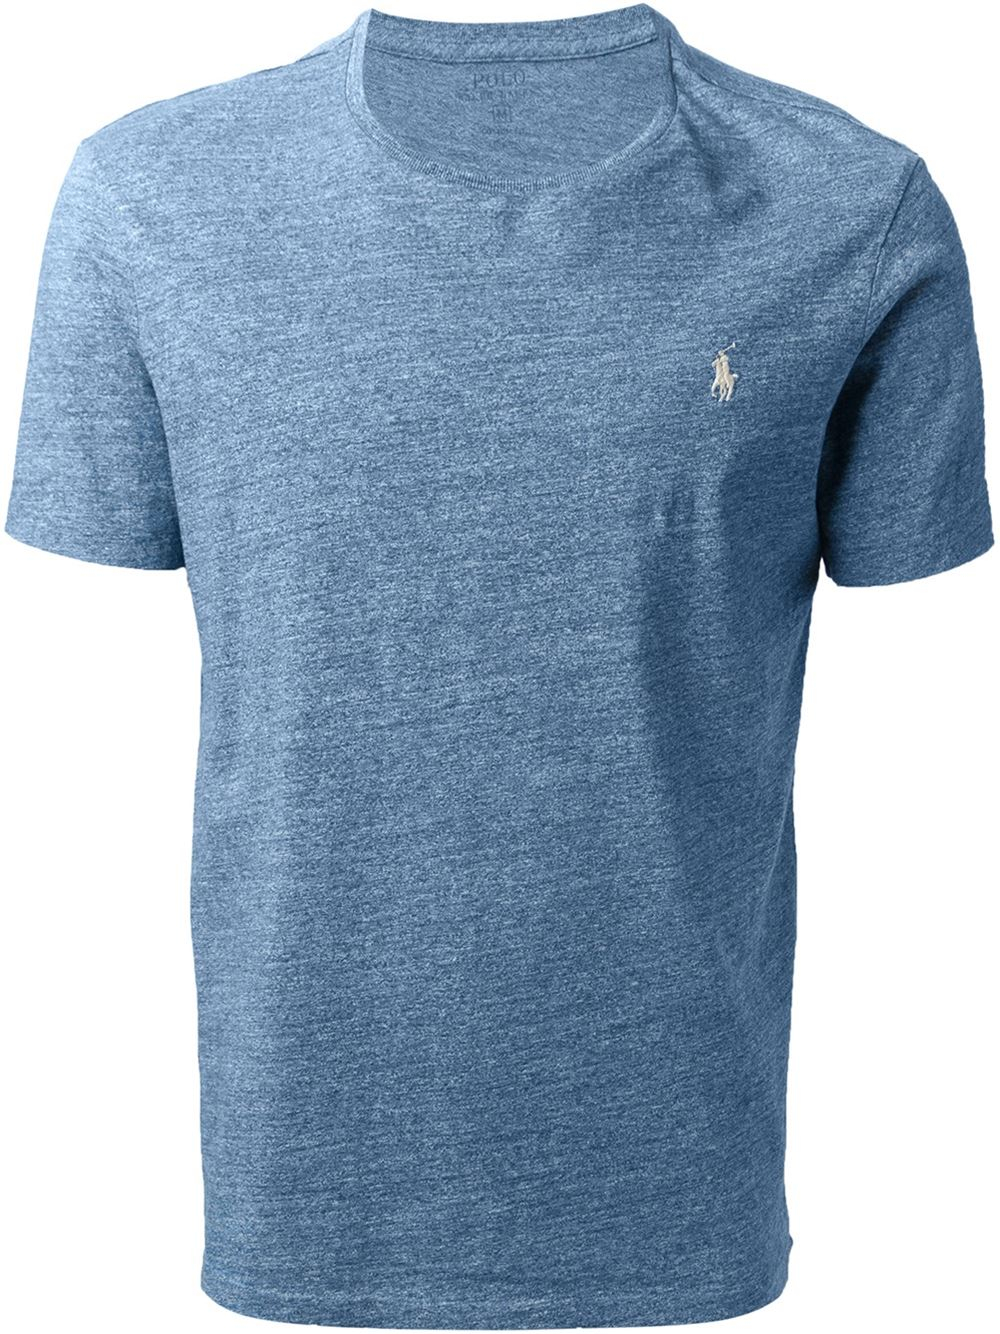 Polo ralph lauren Custom Fit T-Shirt in Blue for Men | Lyst